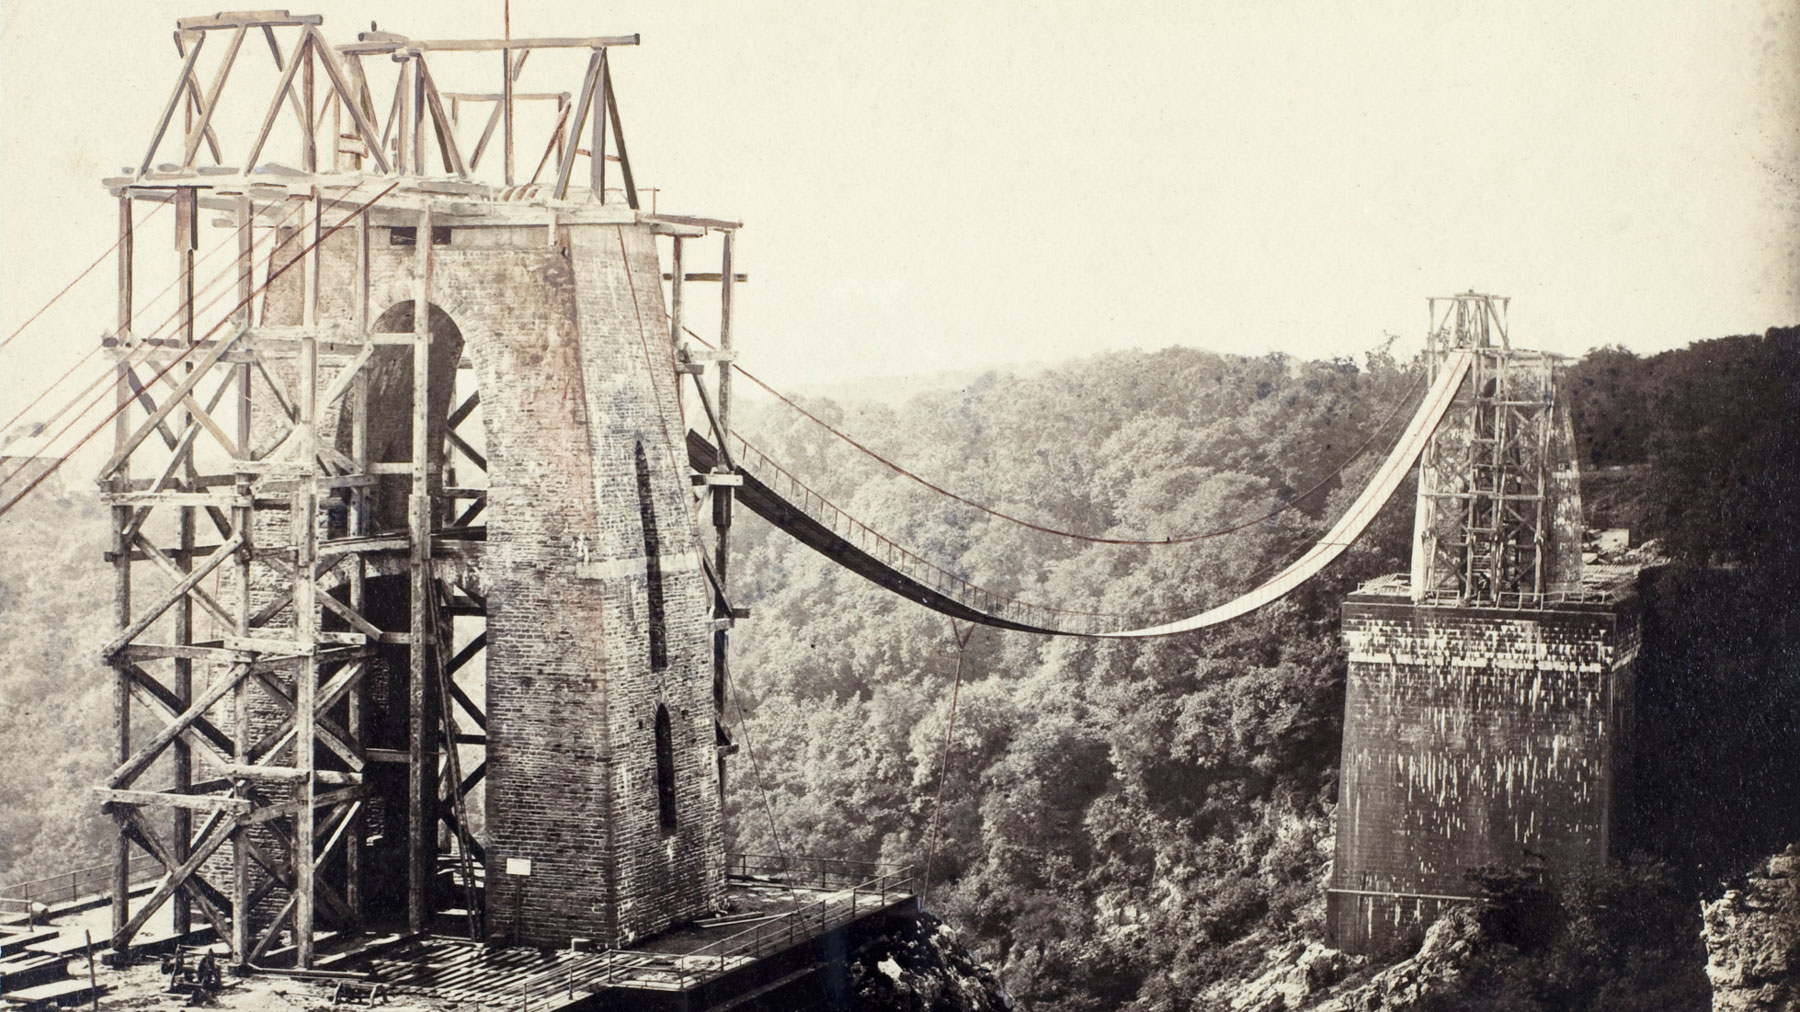 Who Designed The Clifton Suspension Bridge